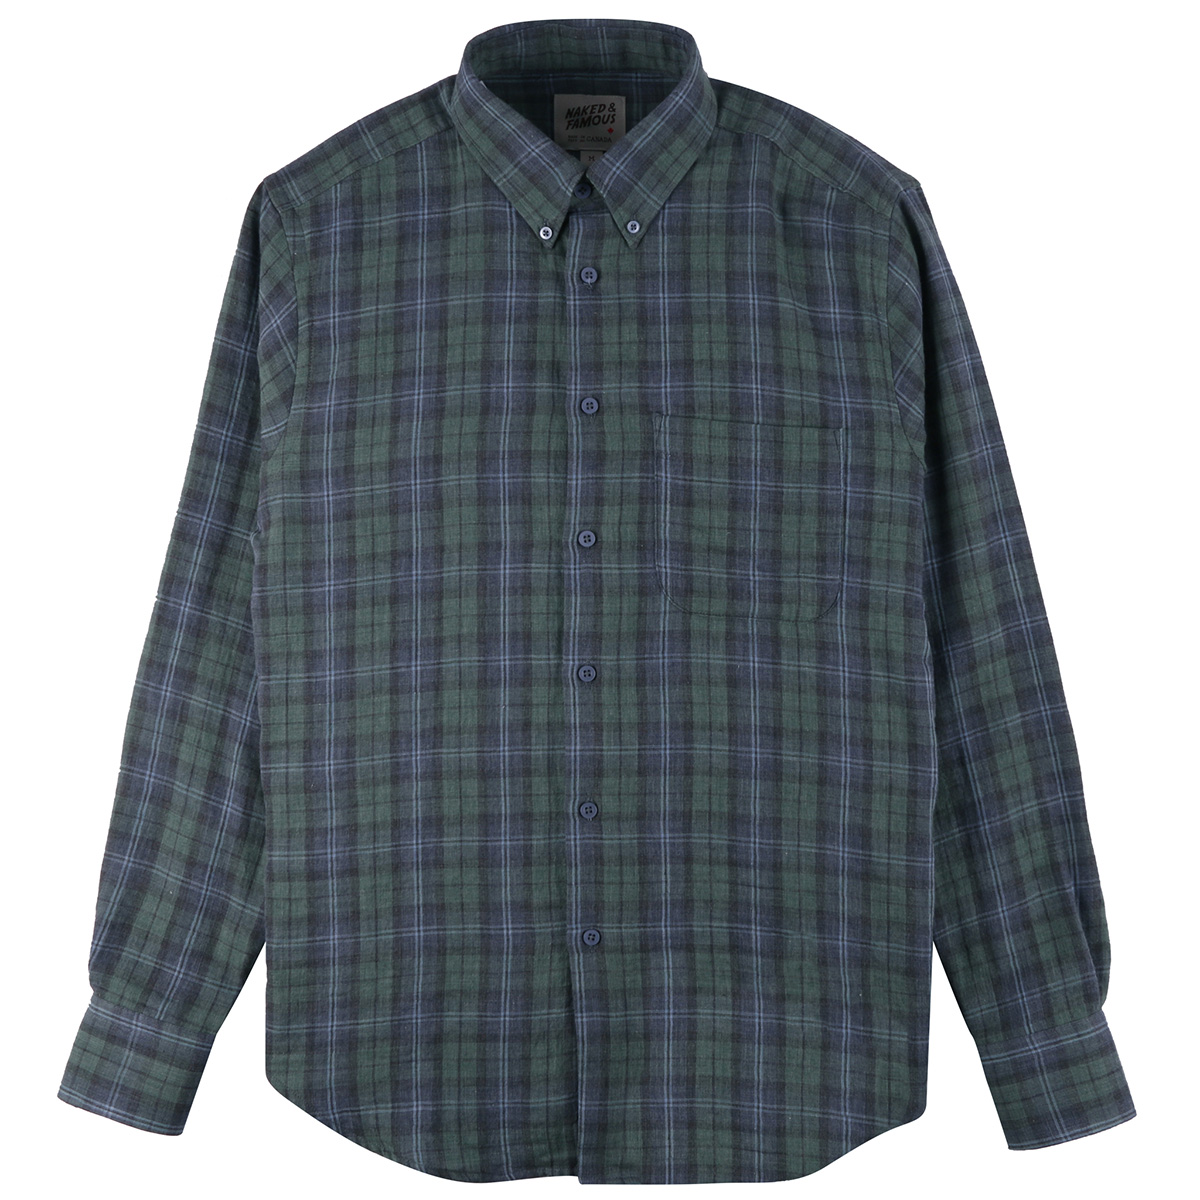 PLAID DOUBLE CLOTH - GREEN/NAVY - Easy Shirt